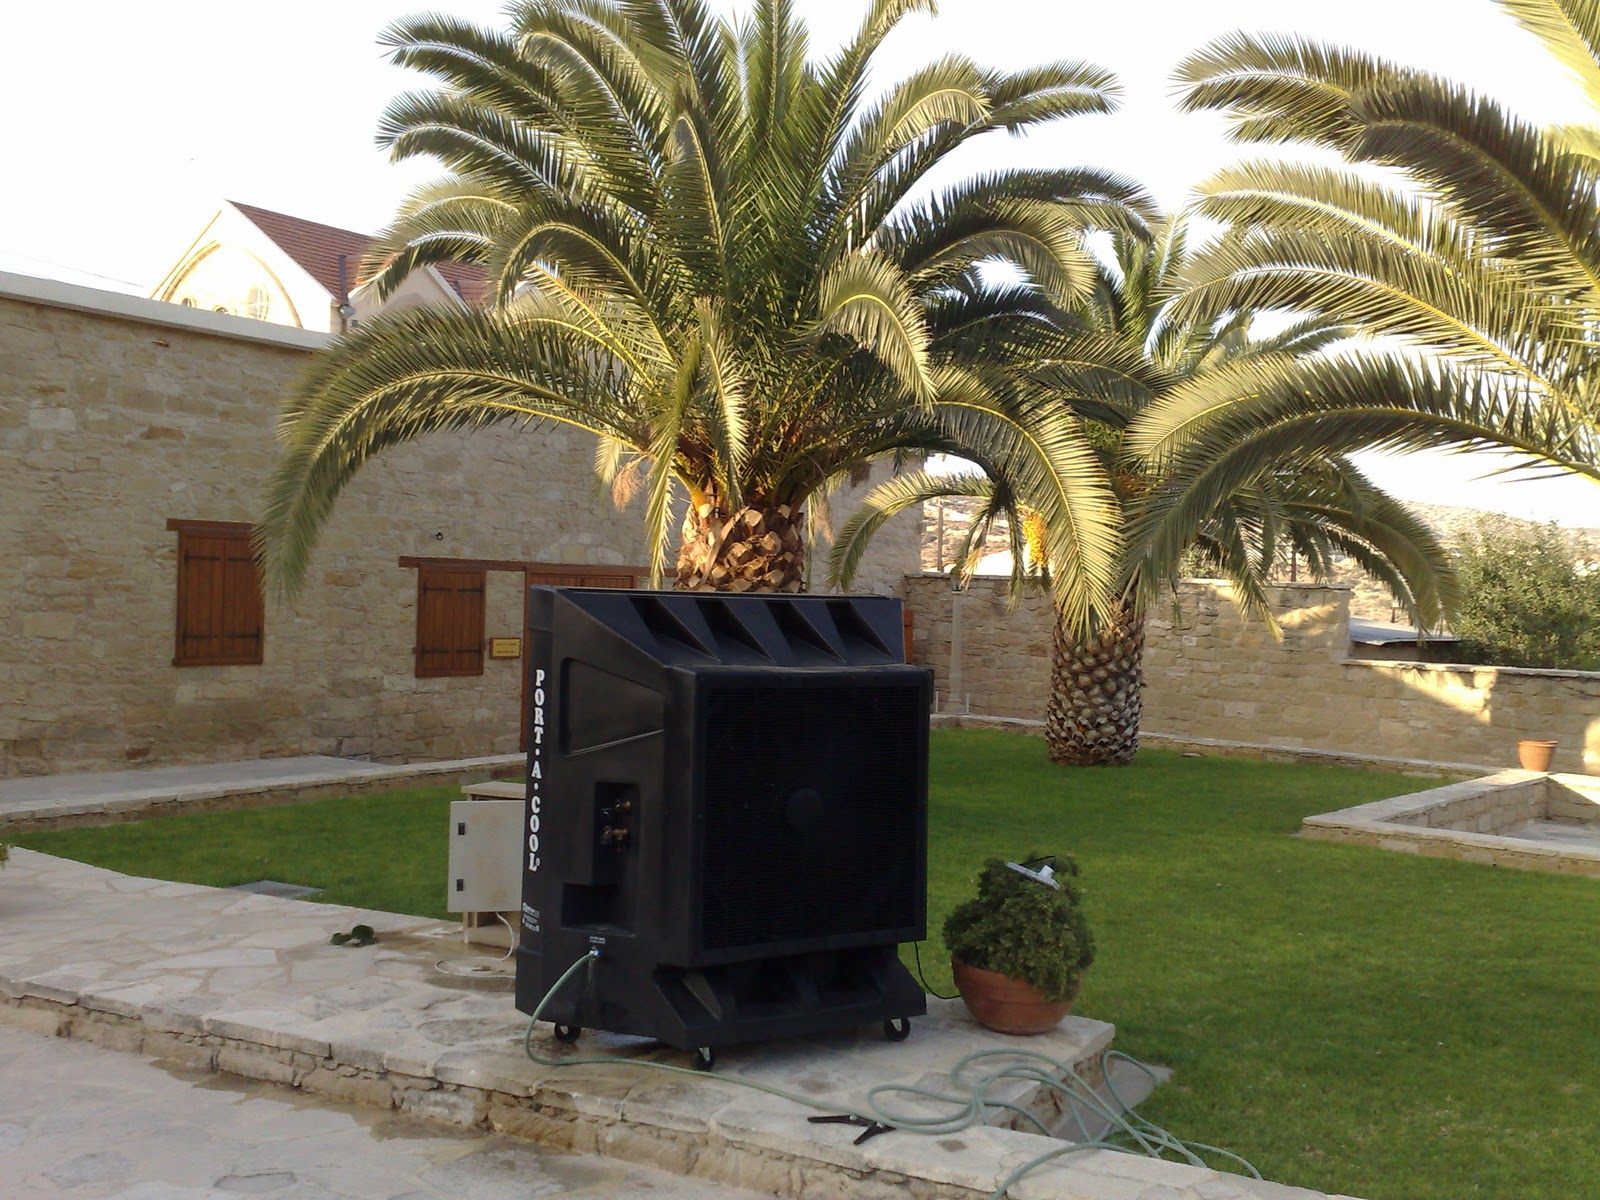 outdoor climate control cyprus evaporative cooling limassol event marquee portable airconditioning